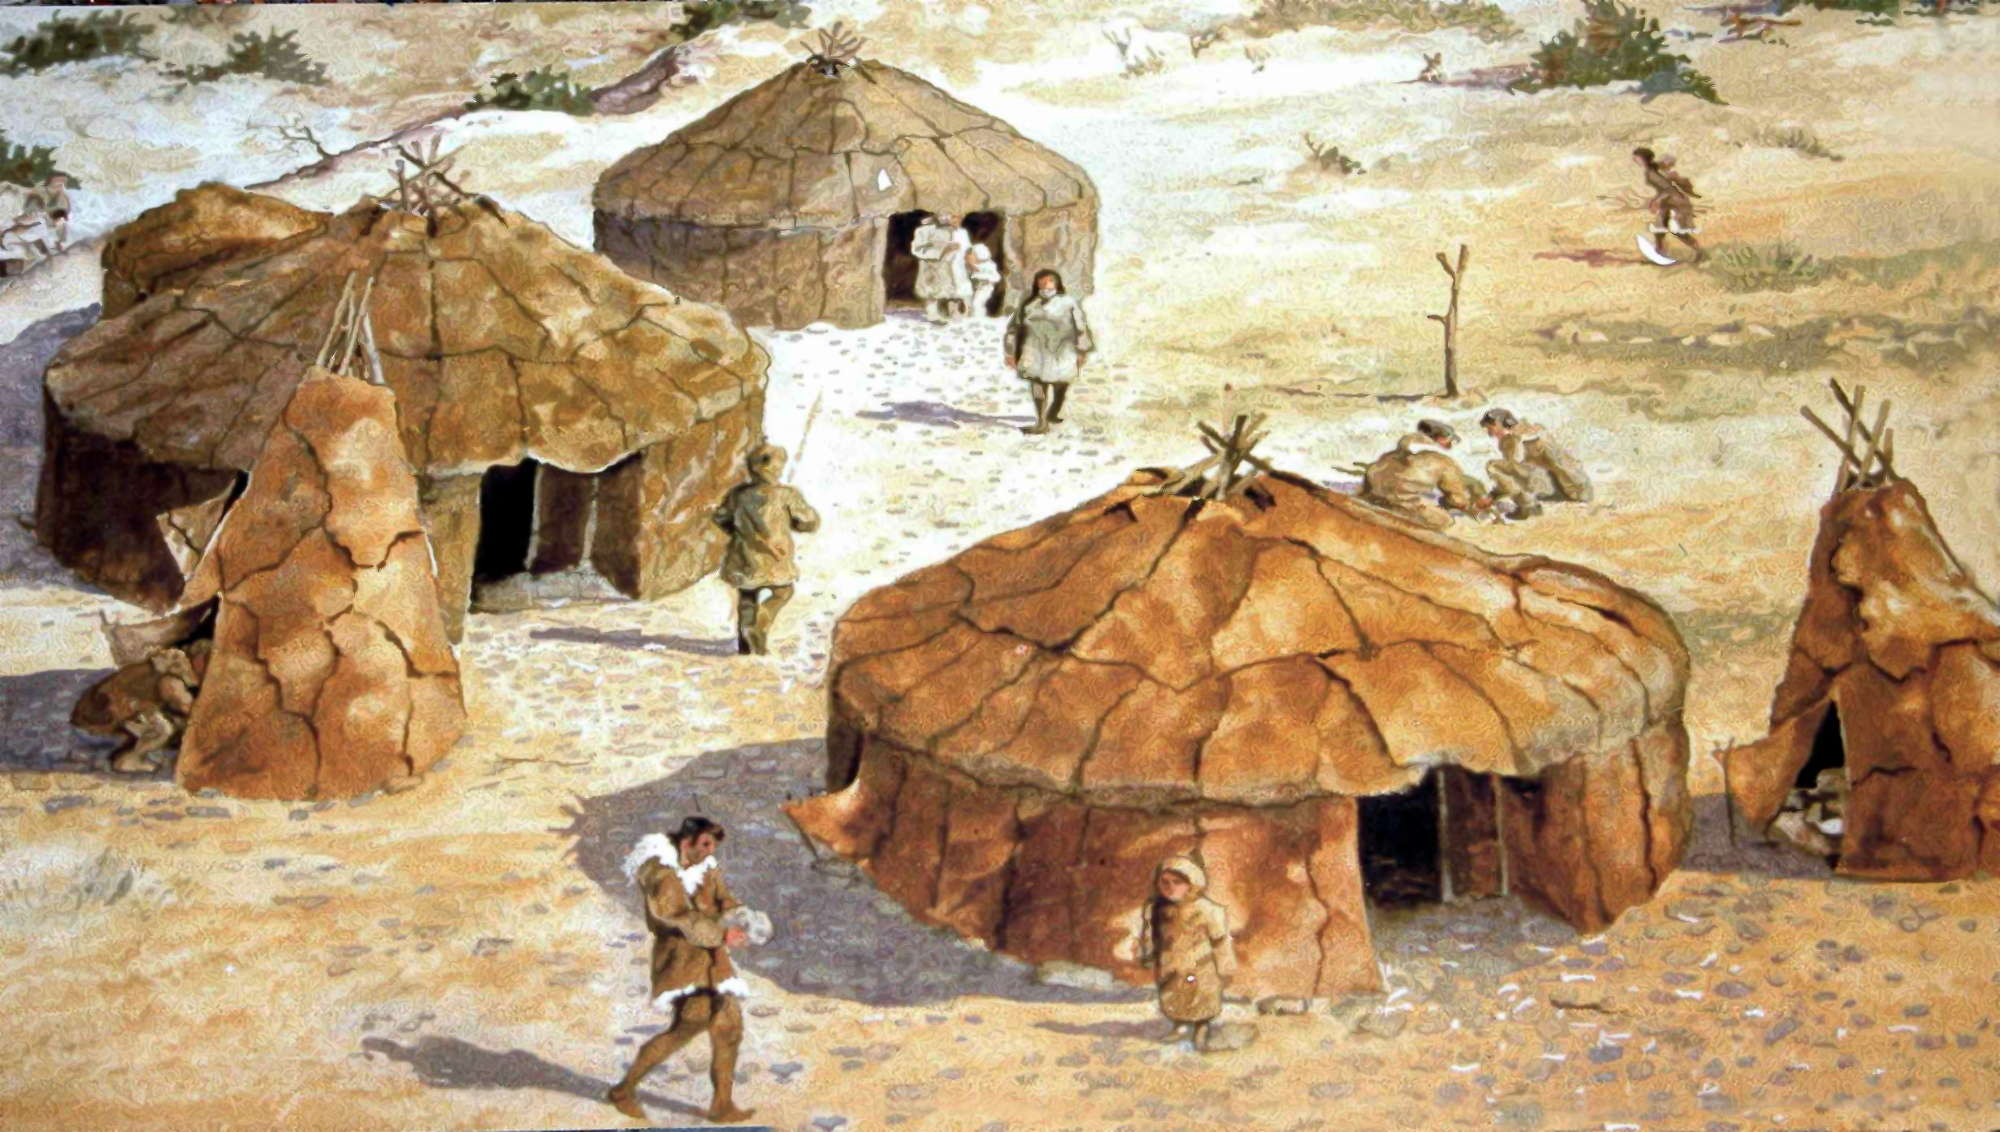 the findings from the paleolithic age in africa Stone tools from india fan debate over origins of cultural complexity the middle stone age in africa and the middle paleolithic in eurasia findings from.